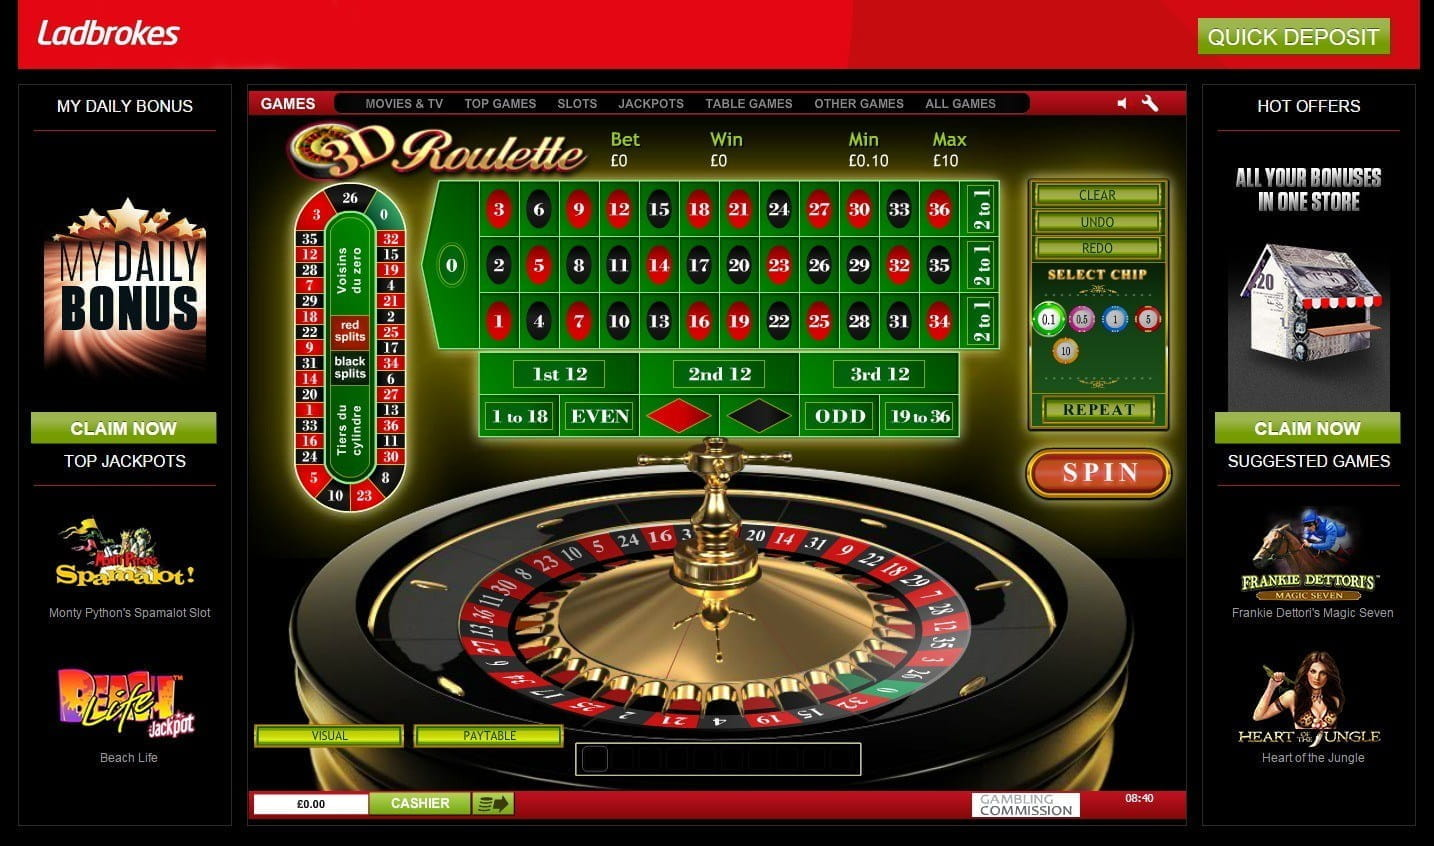 Biggest win on ladbrokes roulette ipad mini 2 sim card slot